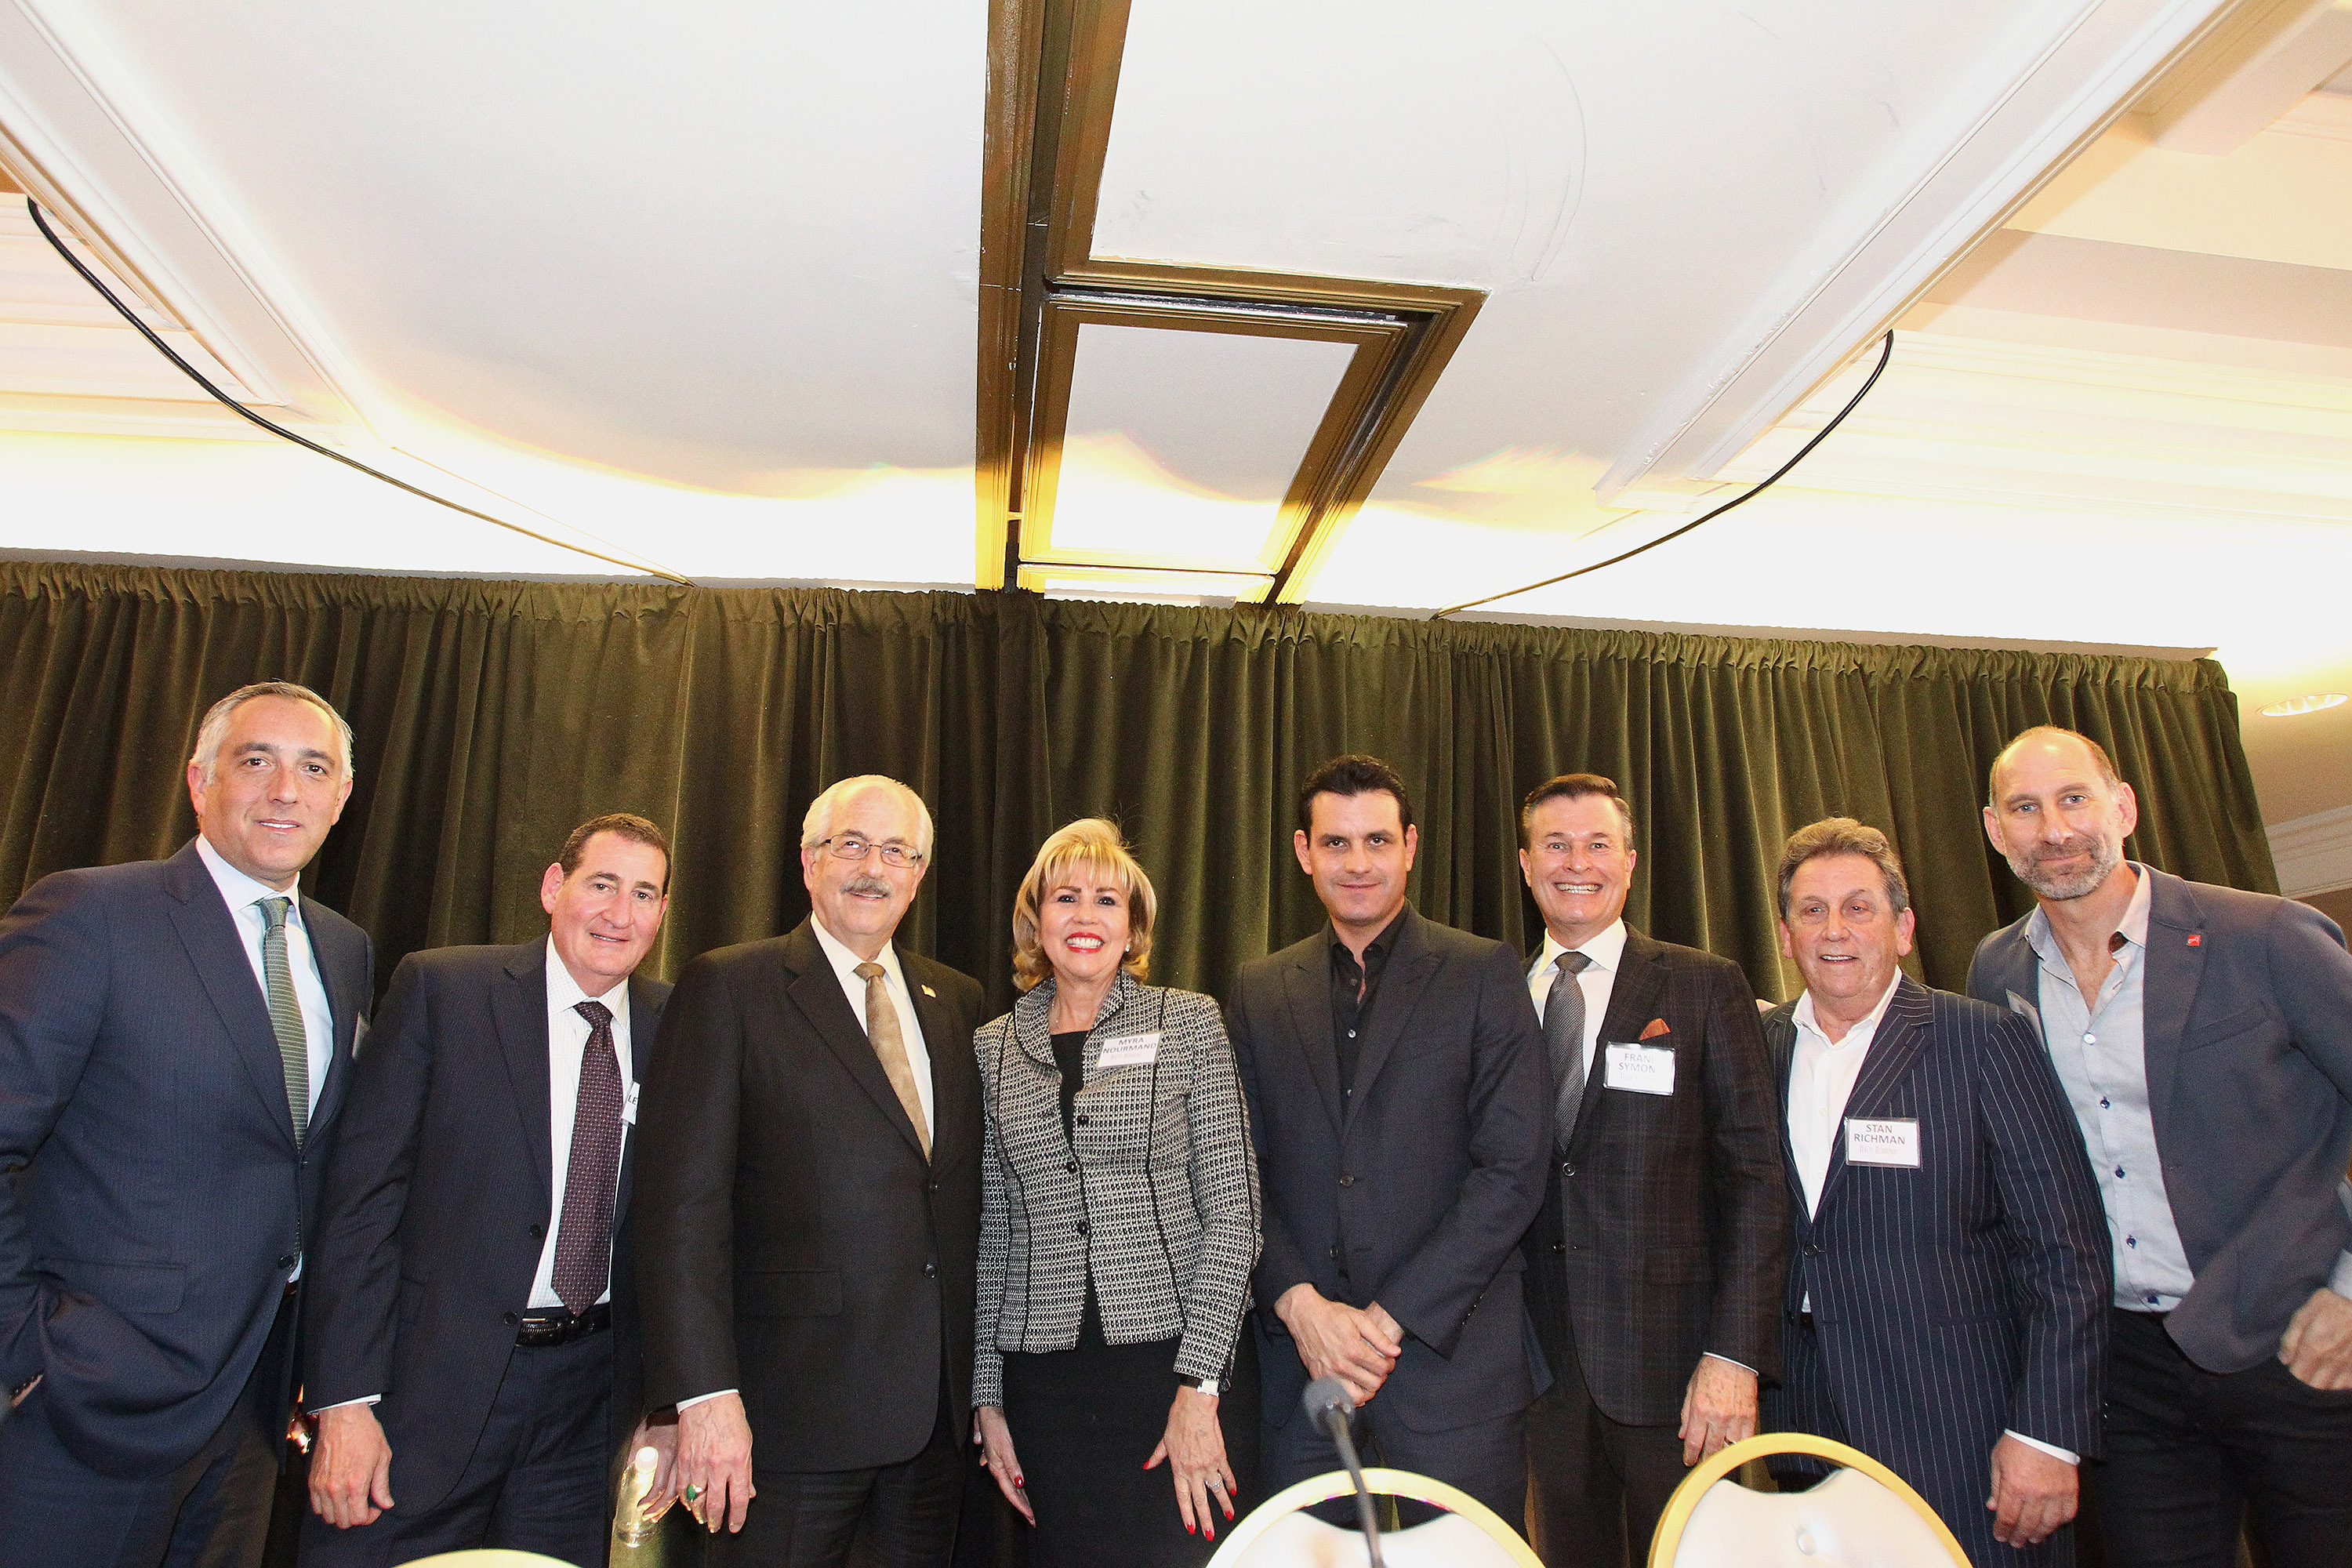 """""""SoCal Power Brokers"""" Panel: (from left to right) Stephen Kotler, Syd Leibovoitch, Timothy Lappen, Myra Nourmand, Kurt Rappaport, Frank Symons, Stan Richman, and Billy Rose"""